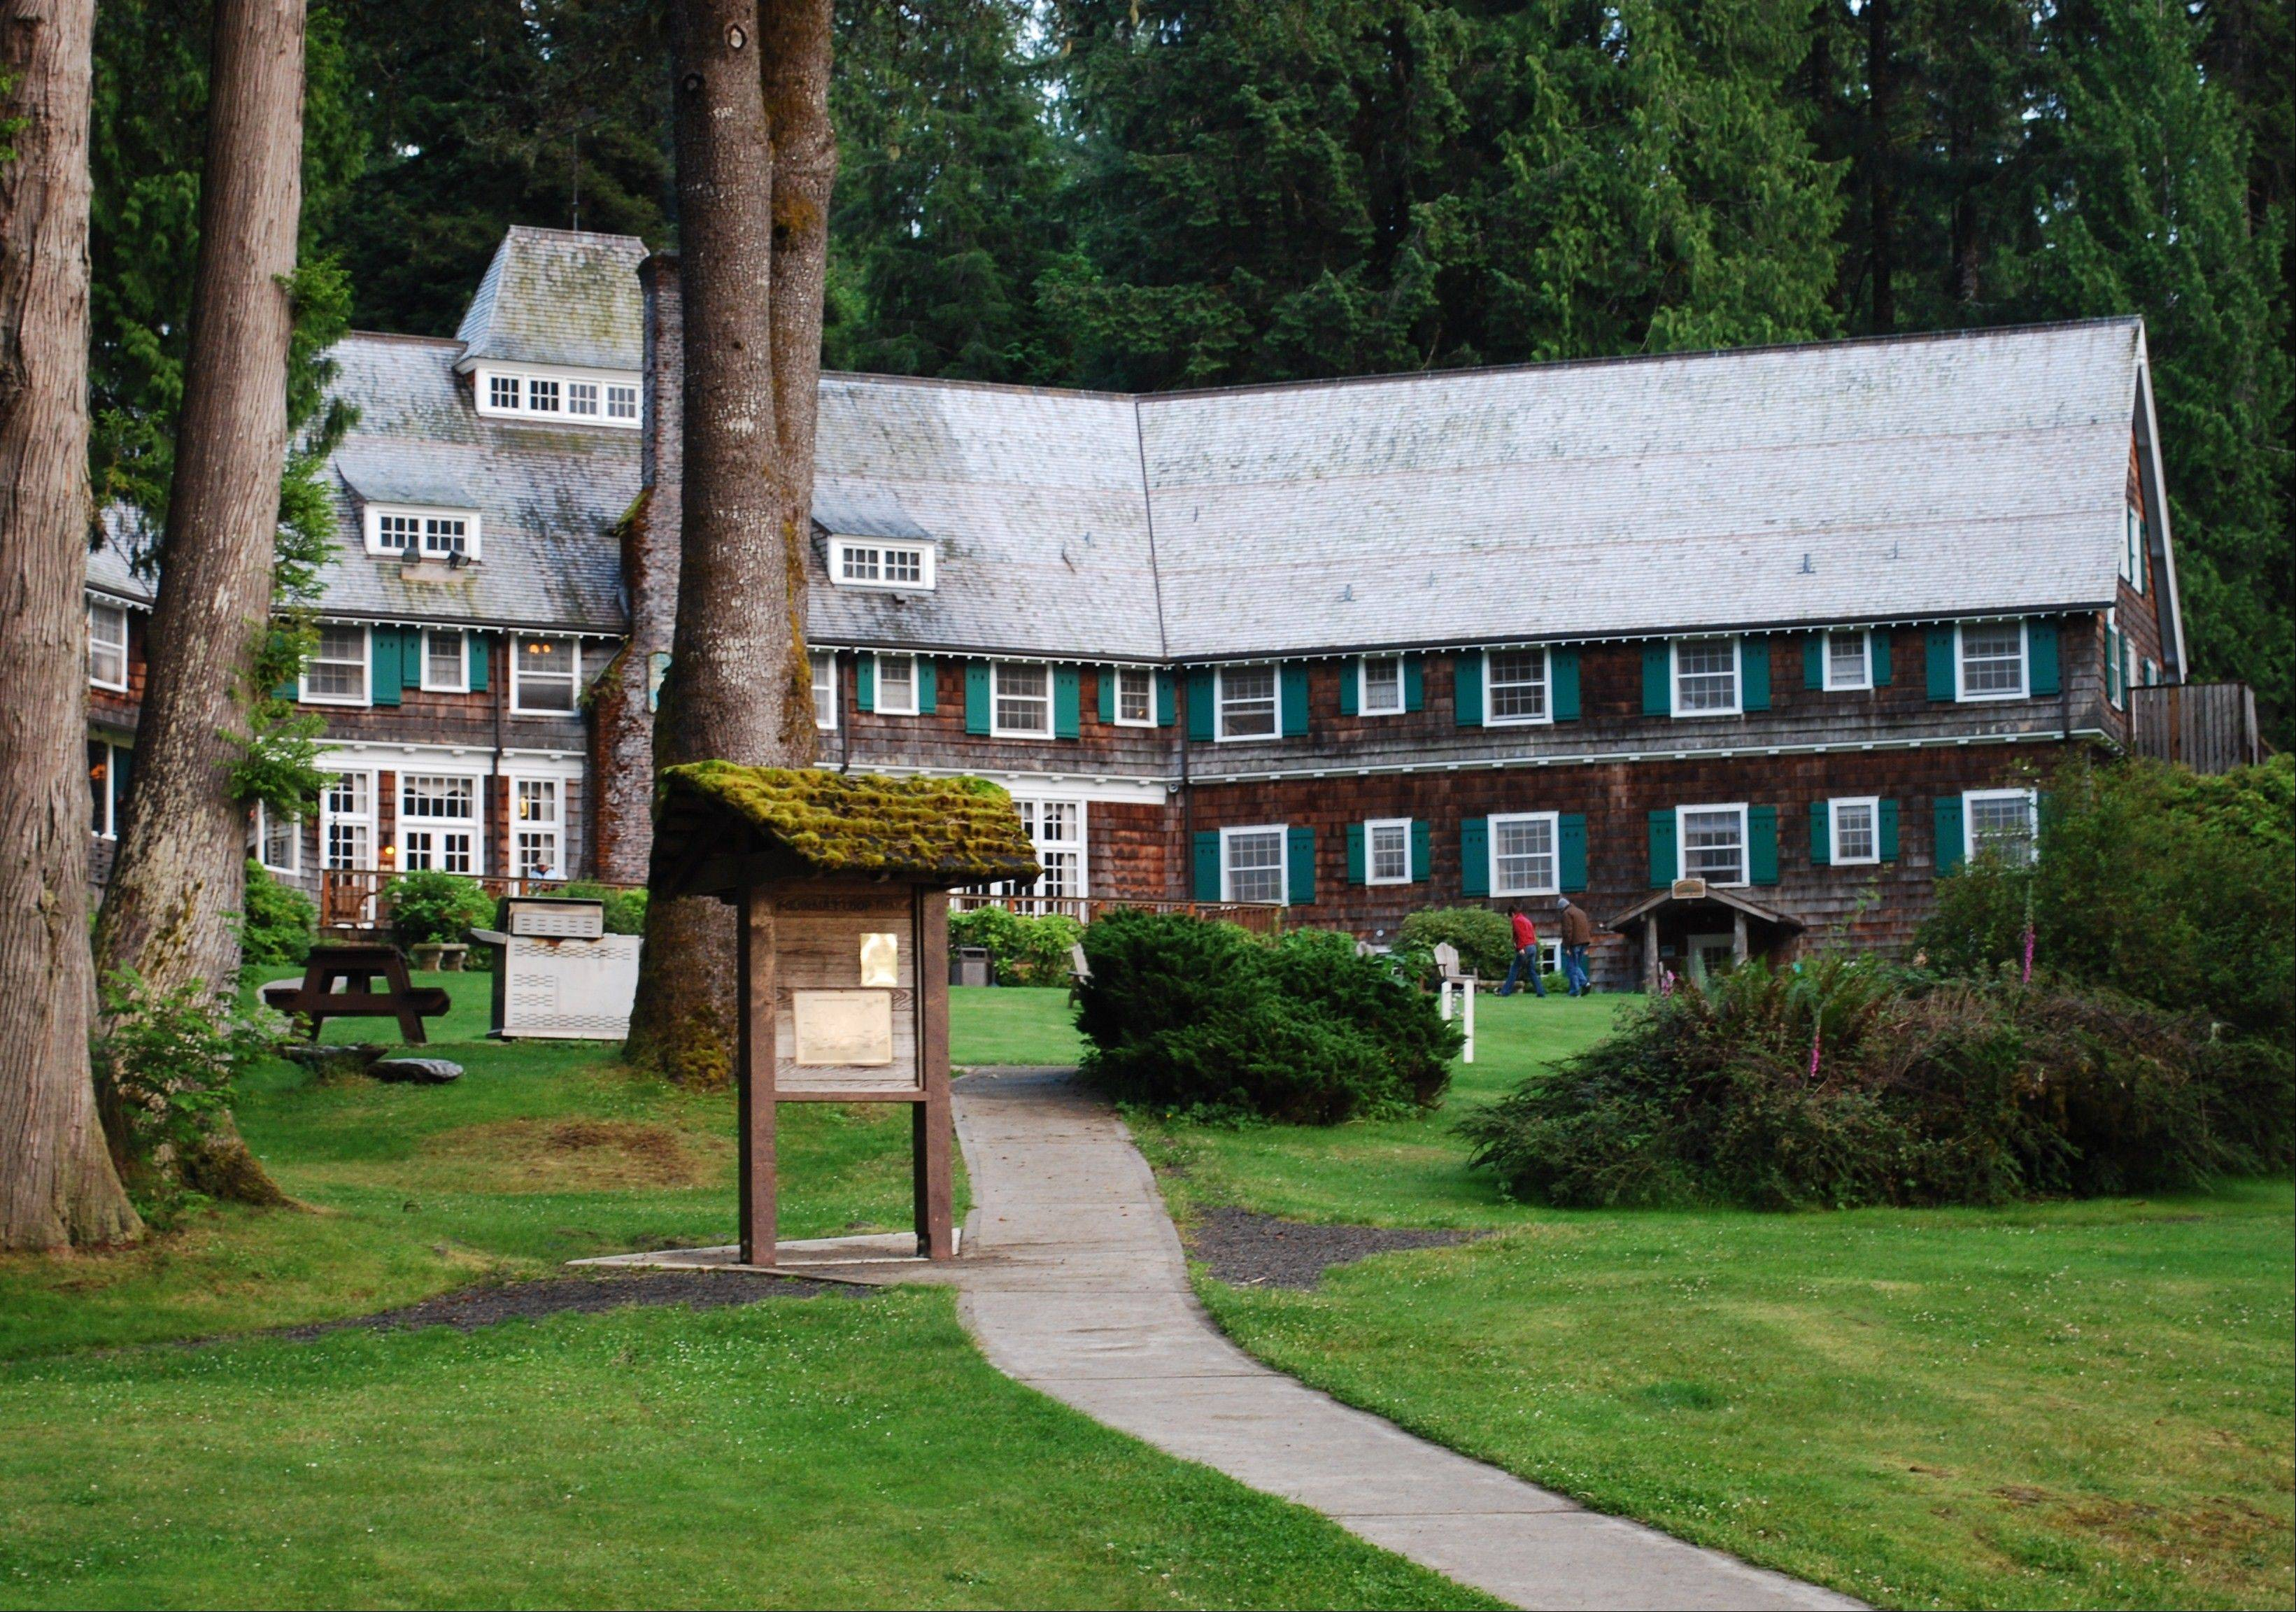 Lake Quinault Lodge and the surrounding rain forest offer rich birding opportunities. The author saw his first evening grosbeak at the lodge.